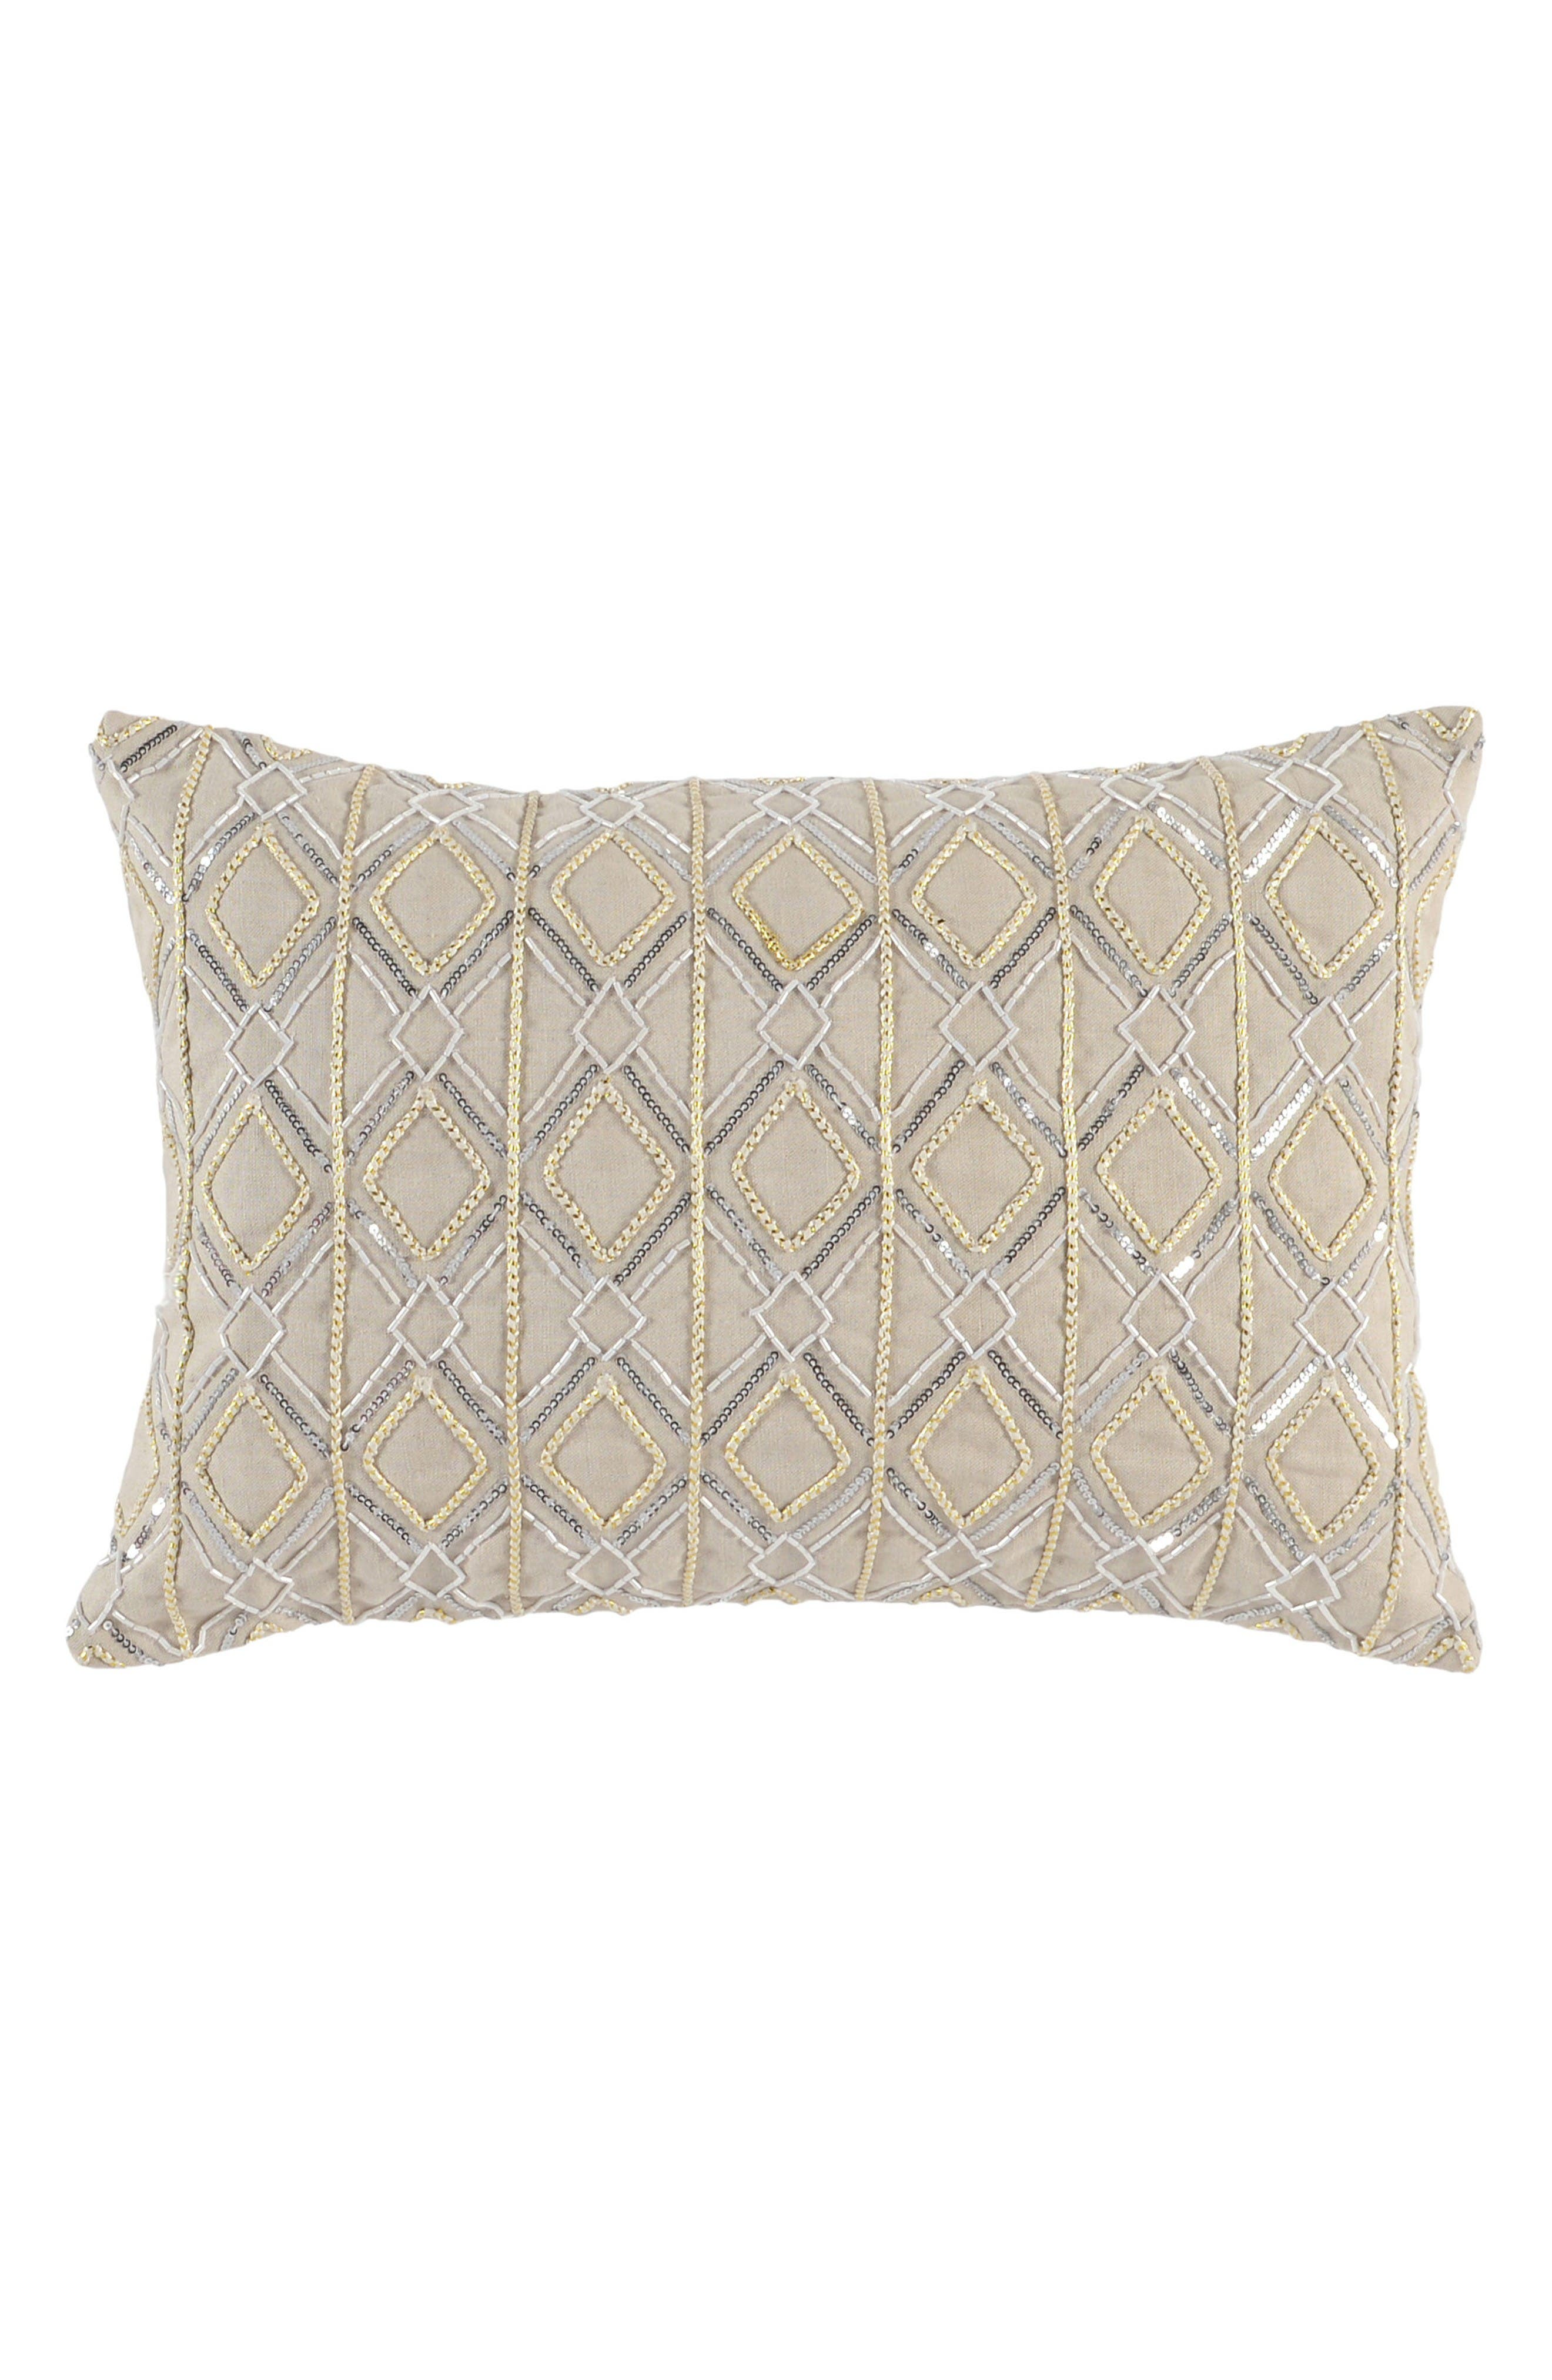 Aledo Accent Pillow,                         Main,                         color, Ivory